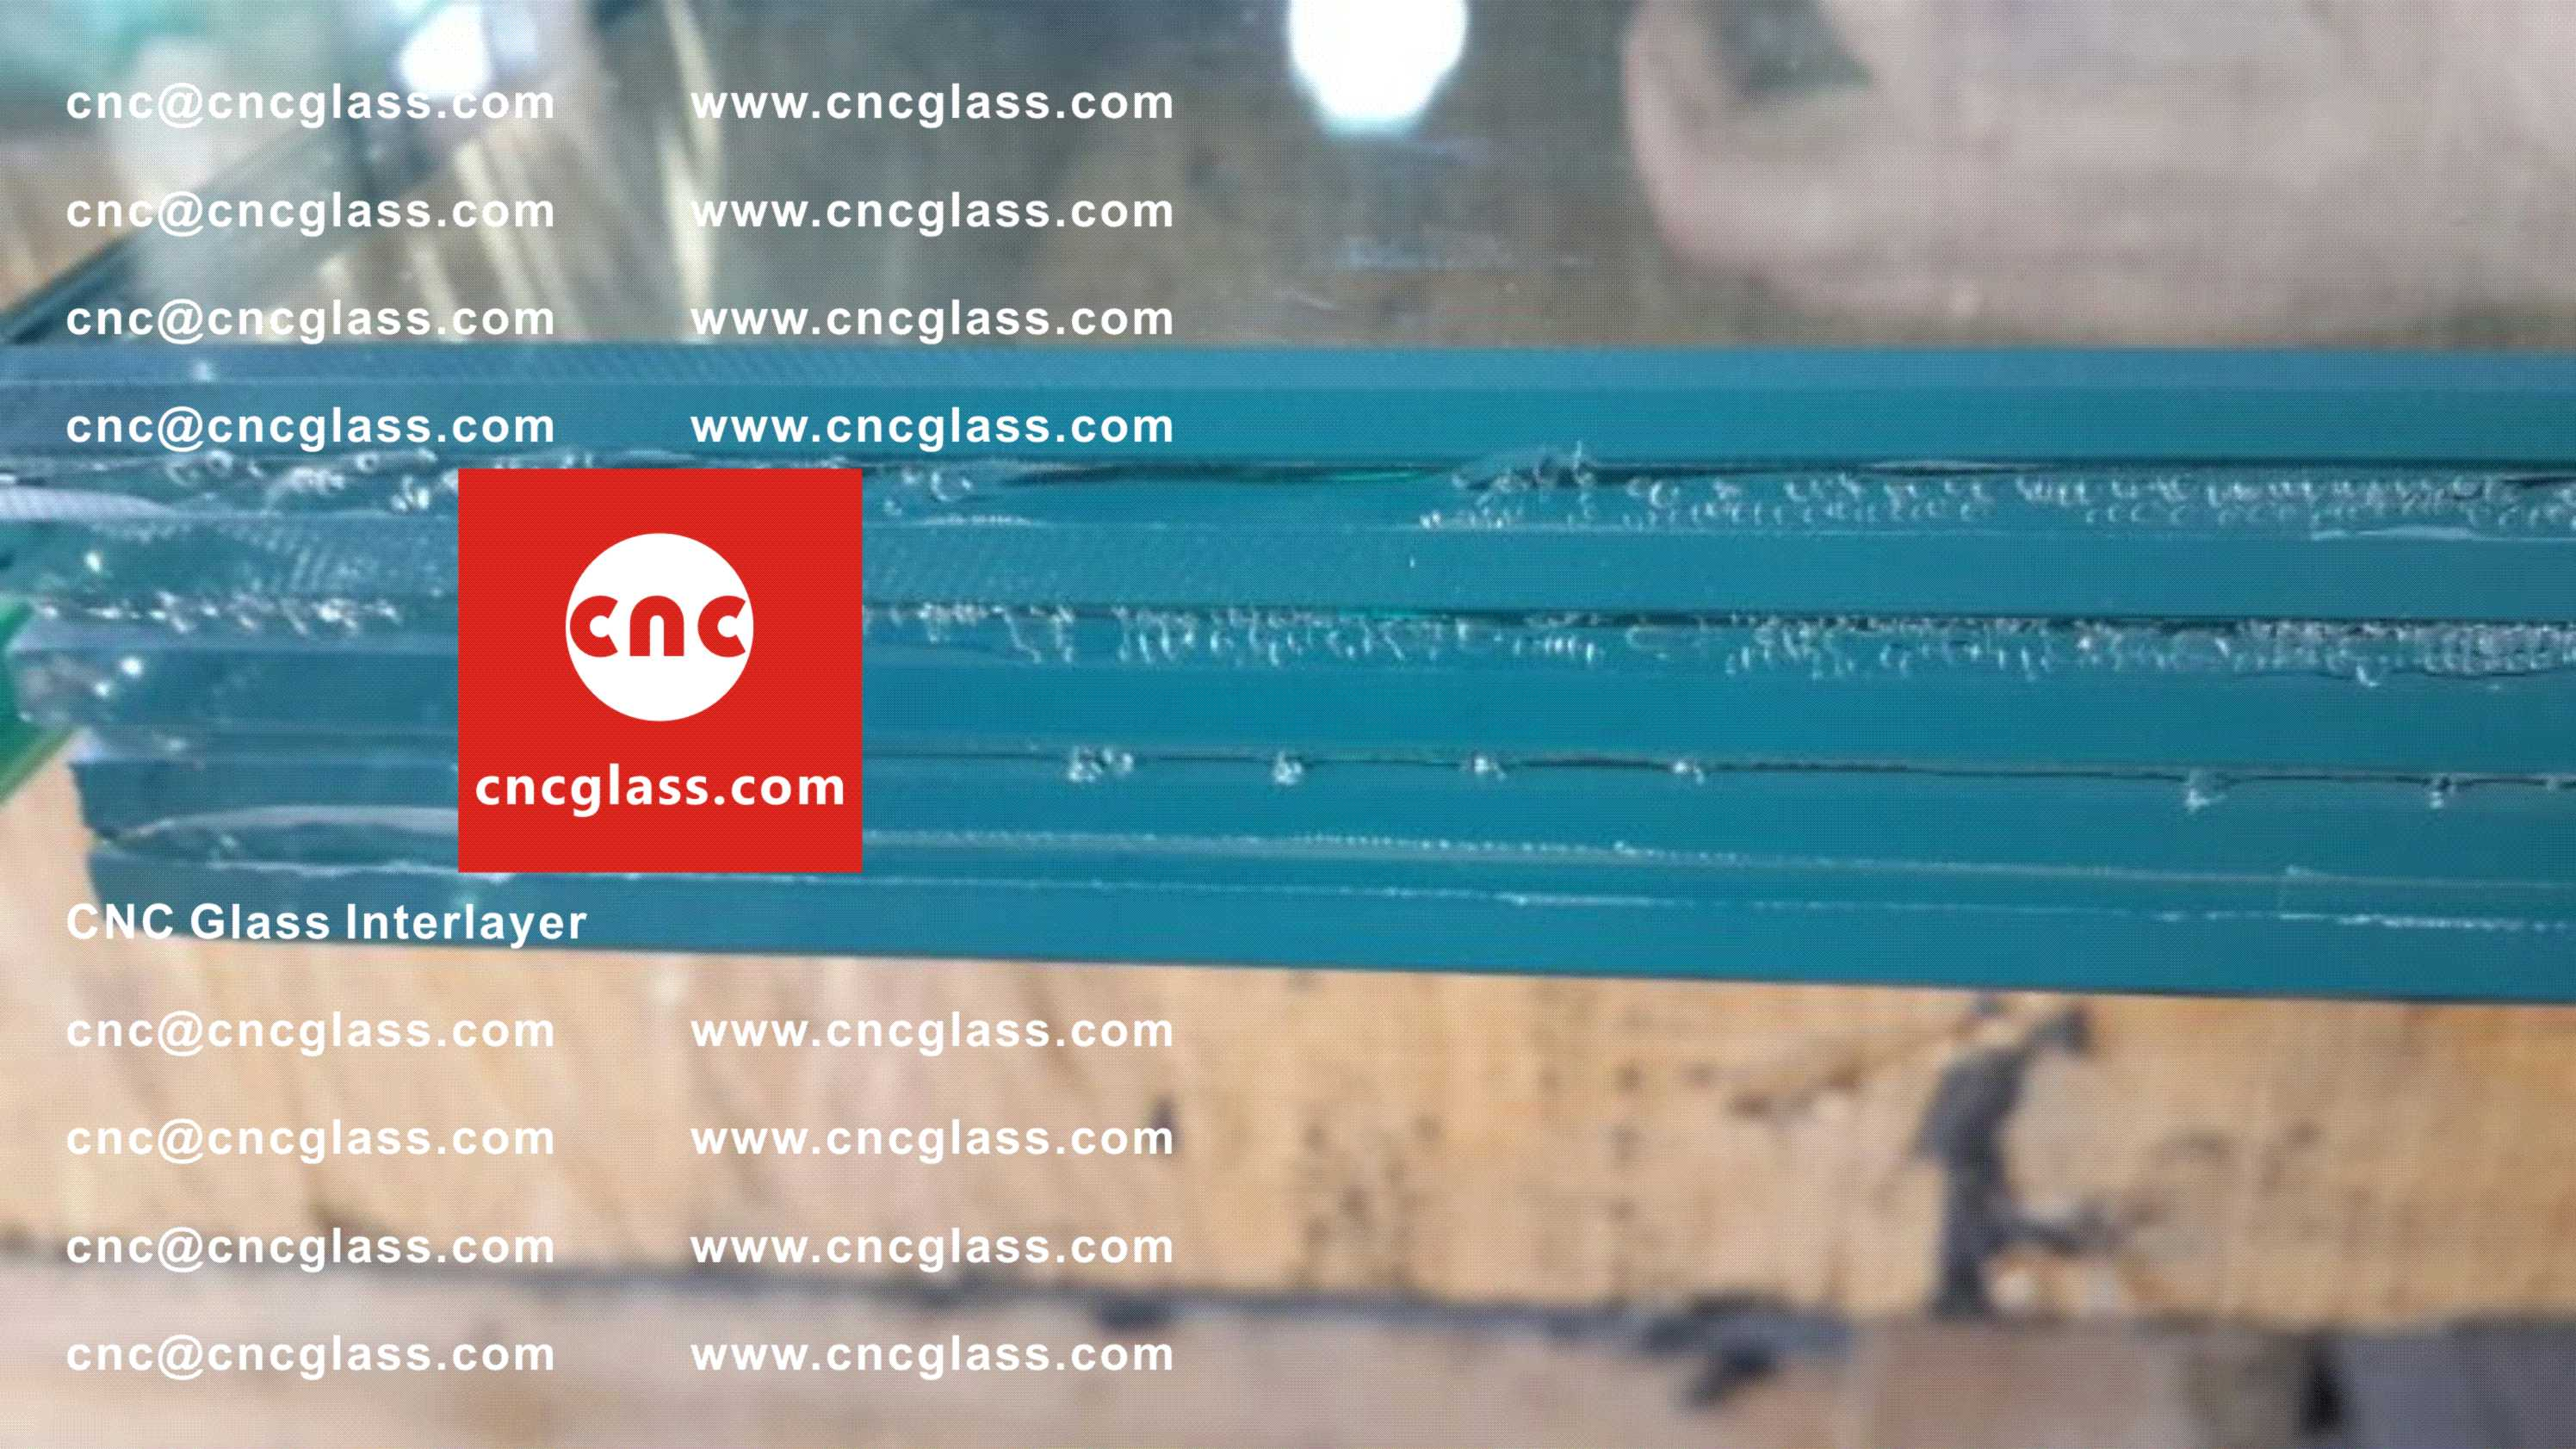 Too High Temperature Causing Bubbles in EVA Film Safety Laminated Glass Glazing (Practical Case Study) (3)